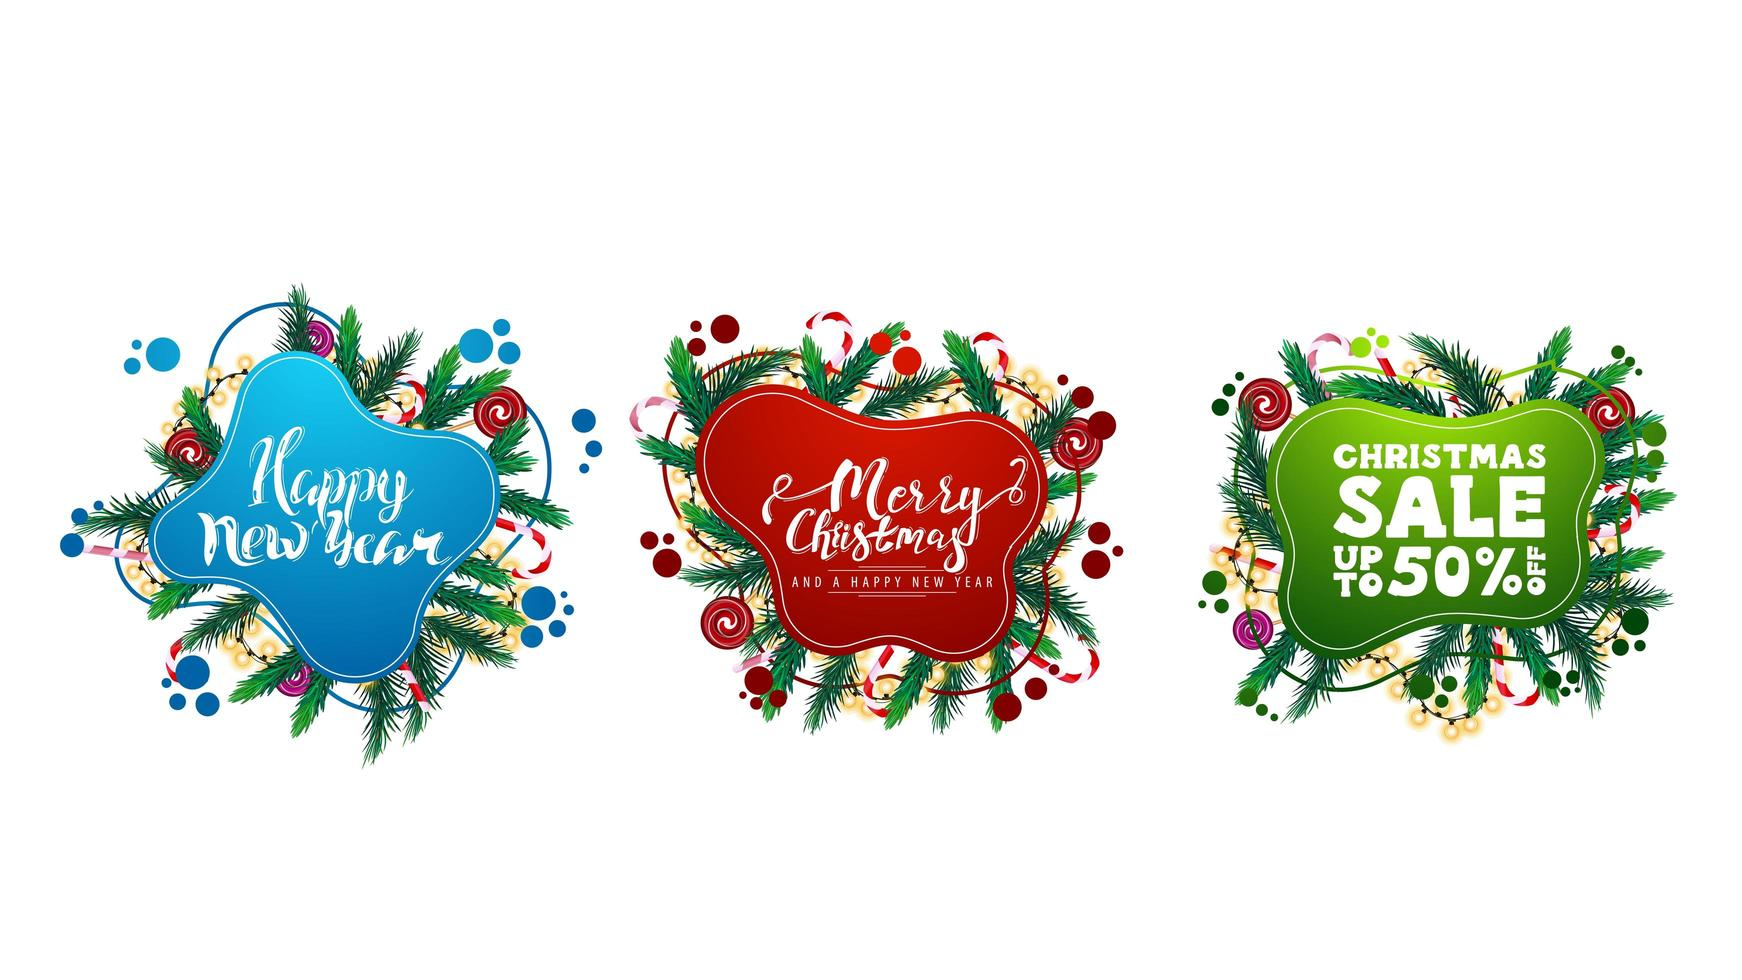 Large collection of Christmas greeting and discounts web elements in liquid style with abstract fluid shapes decorated with Christmas tree branches vector